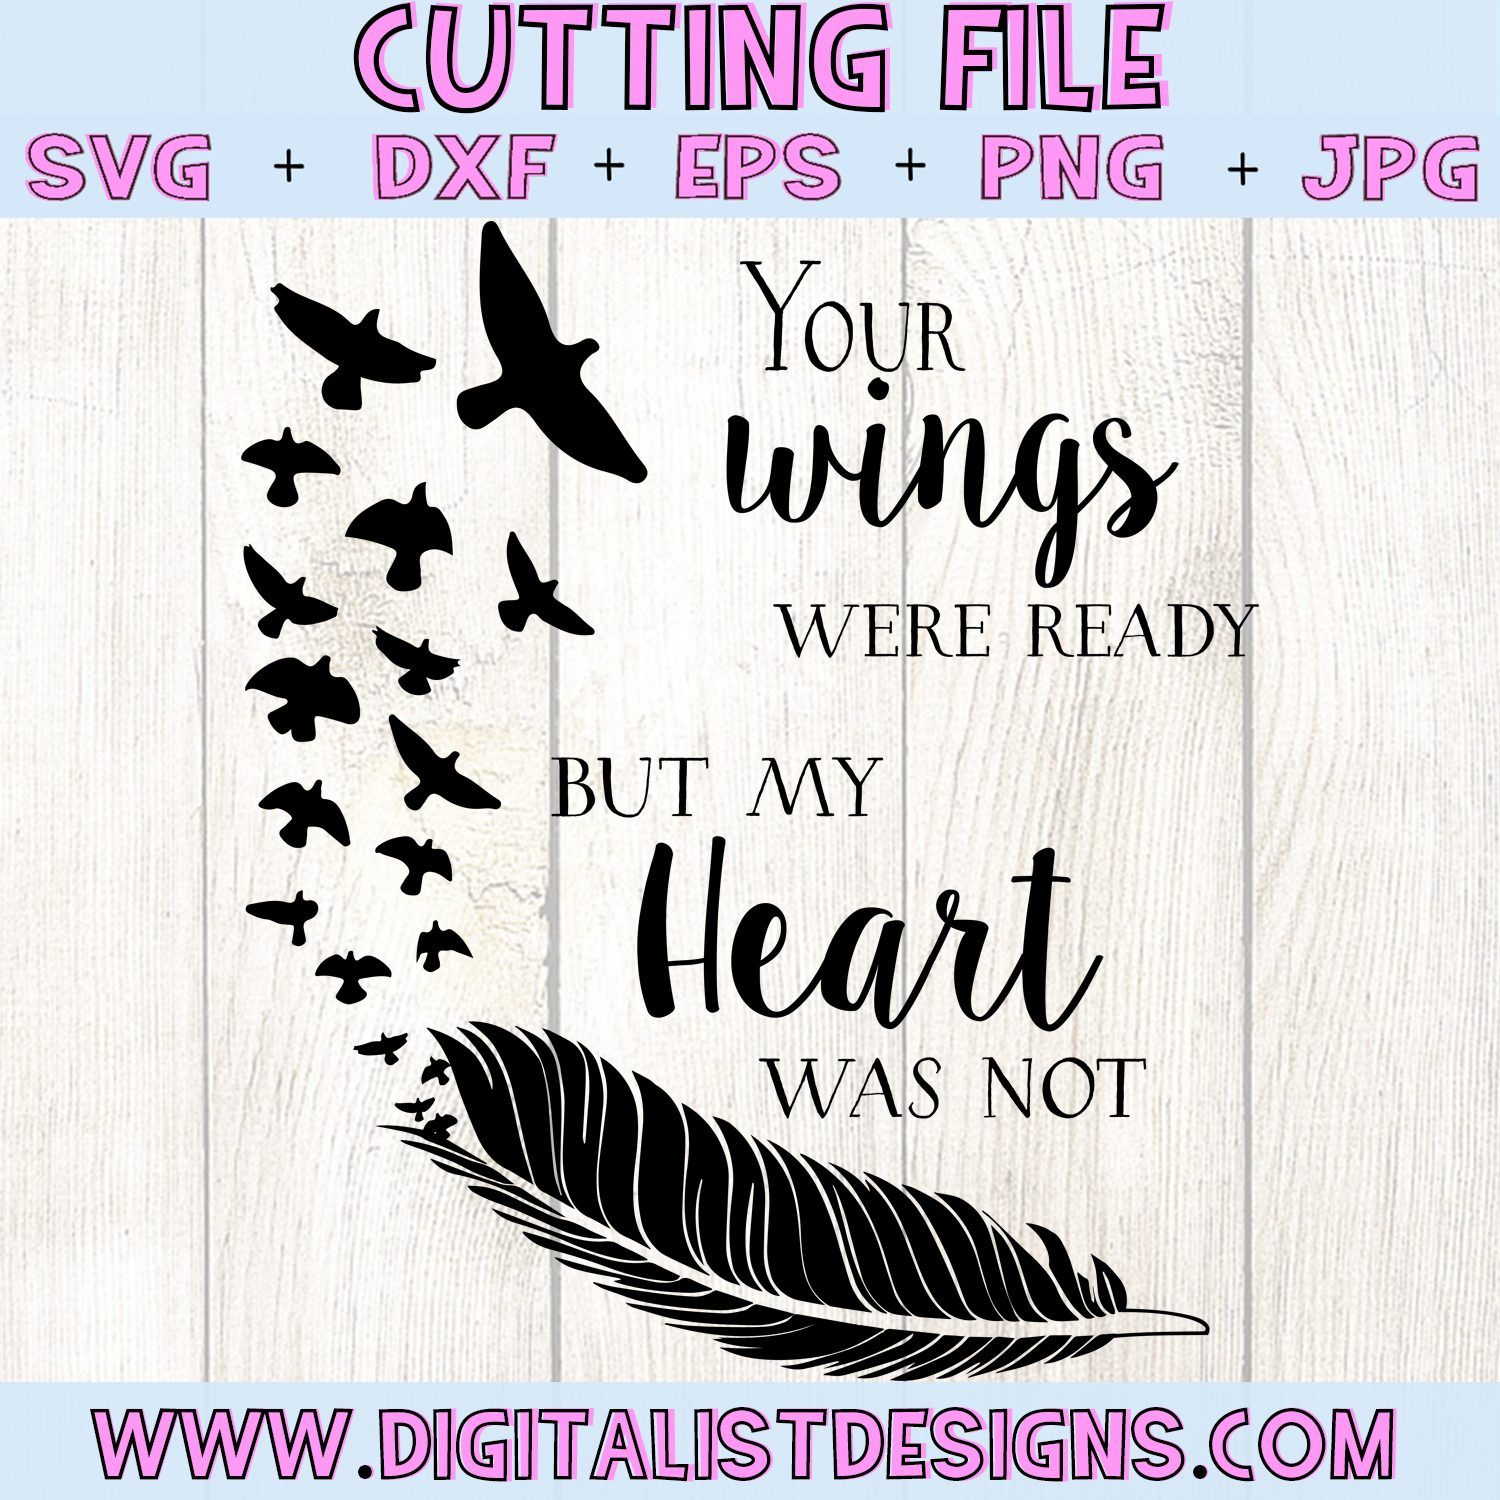 Free Your Wings Were Ready but My Heart Was Not SVG